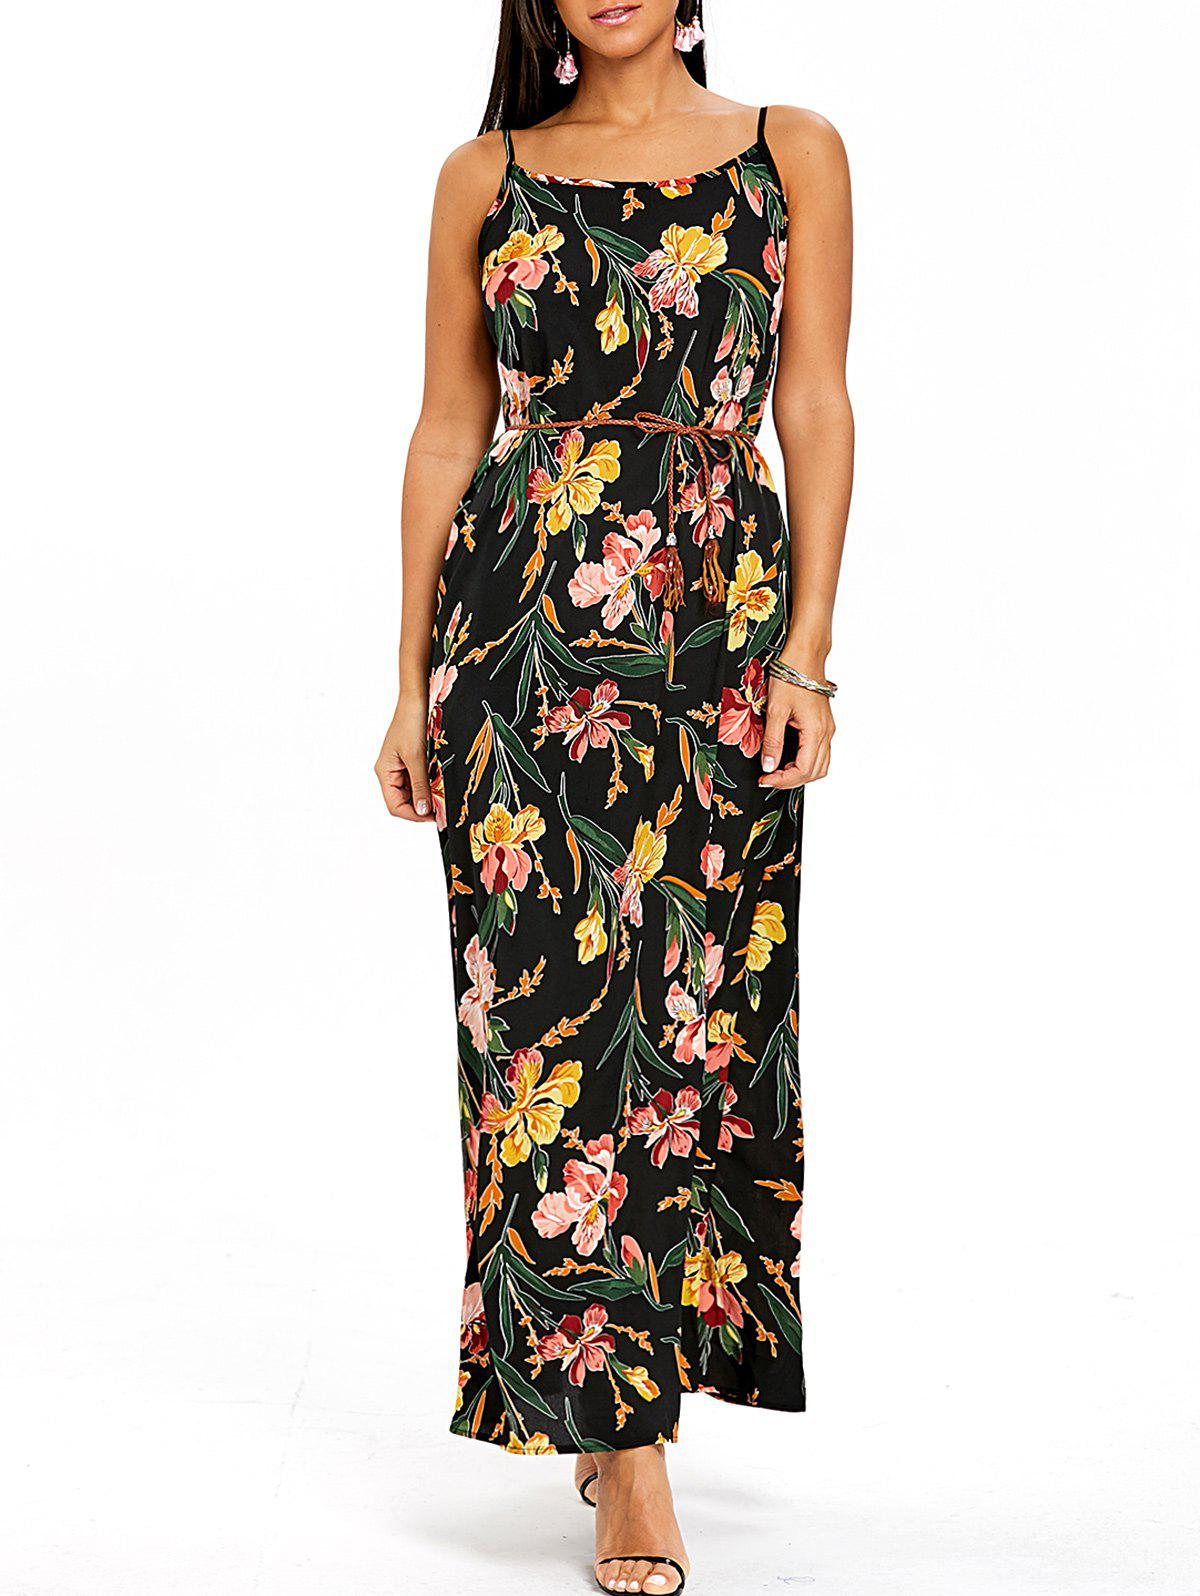 Chic Flower Print Spaghetti Strap Maxi Flowy Dress